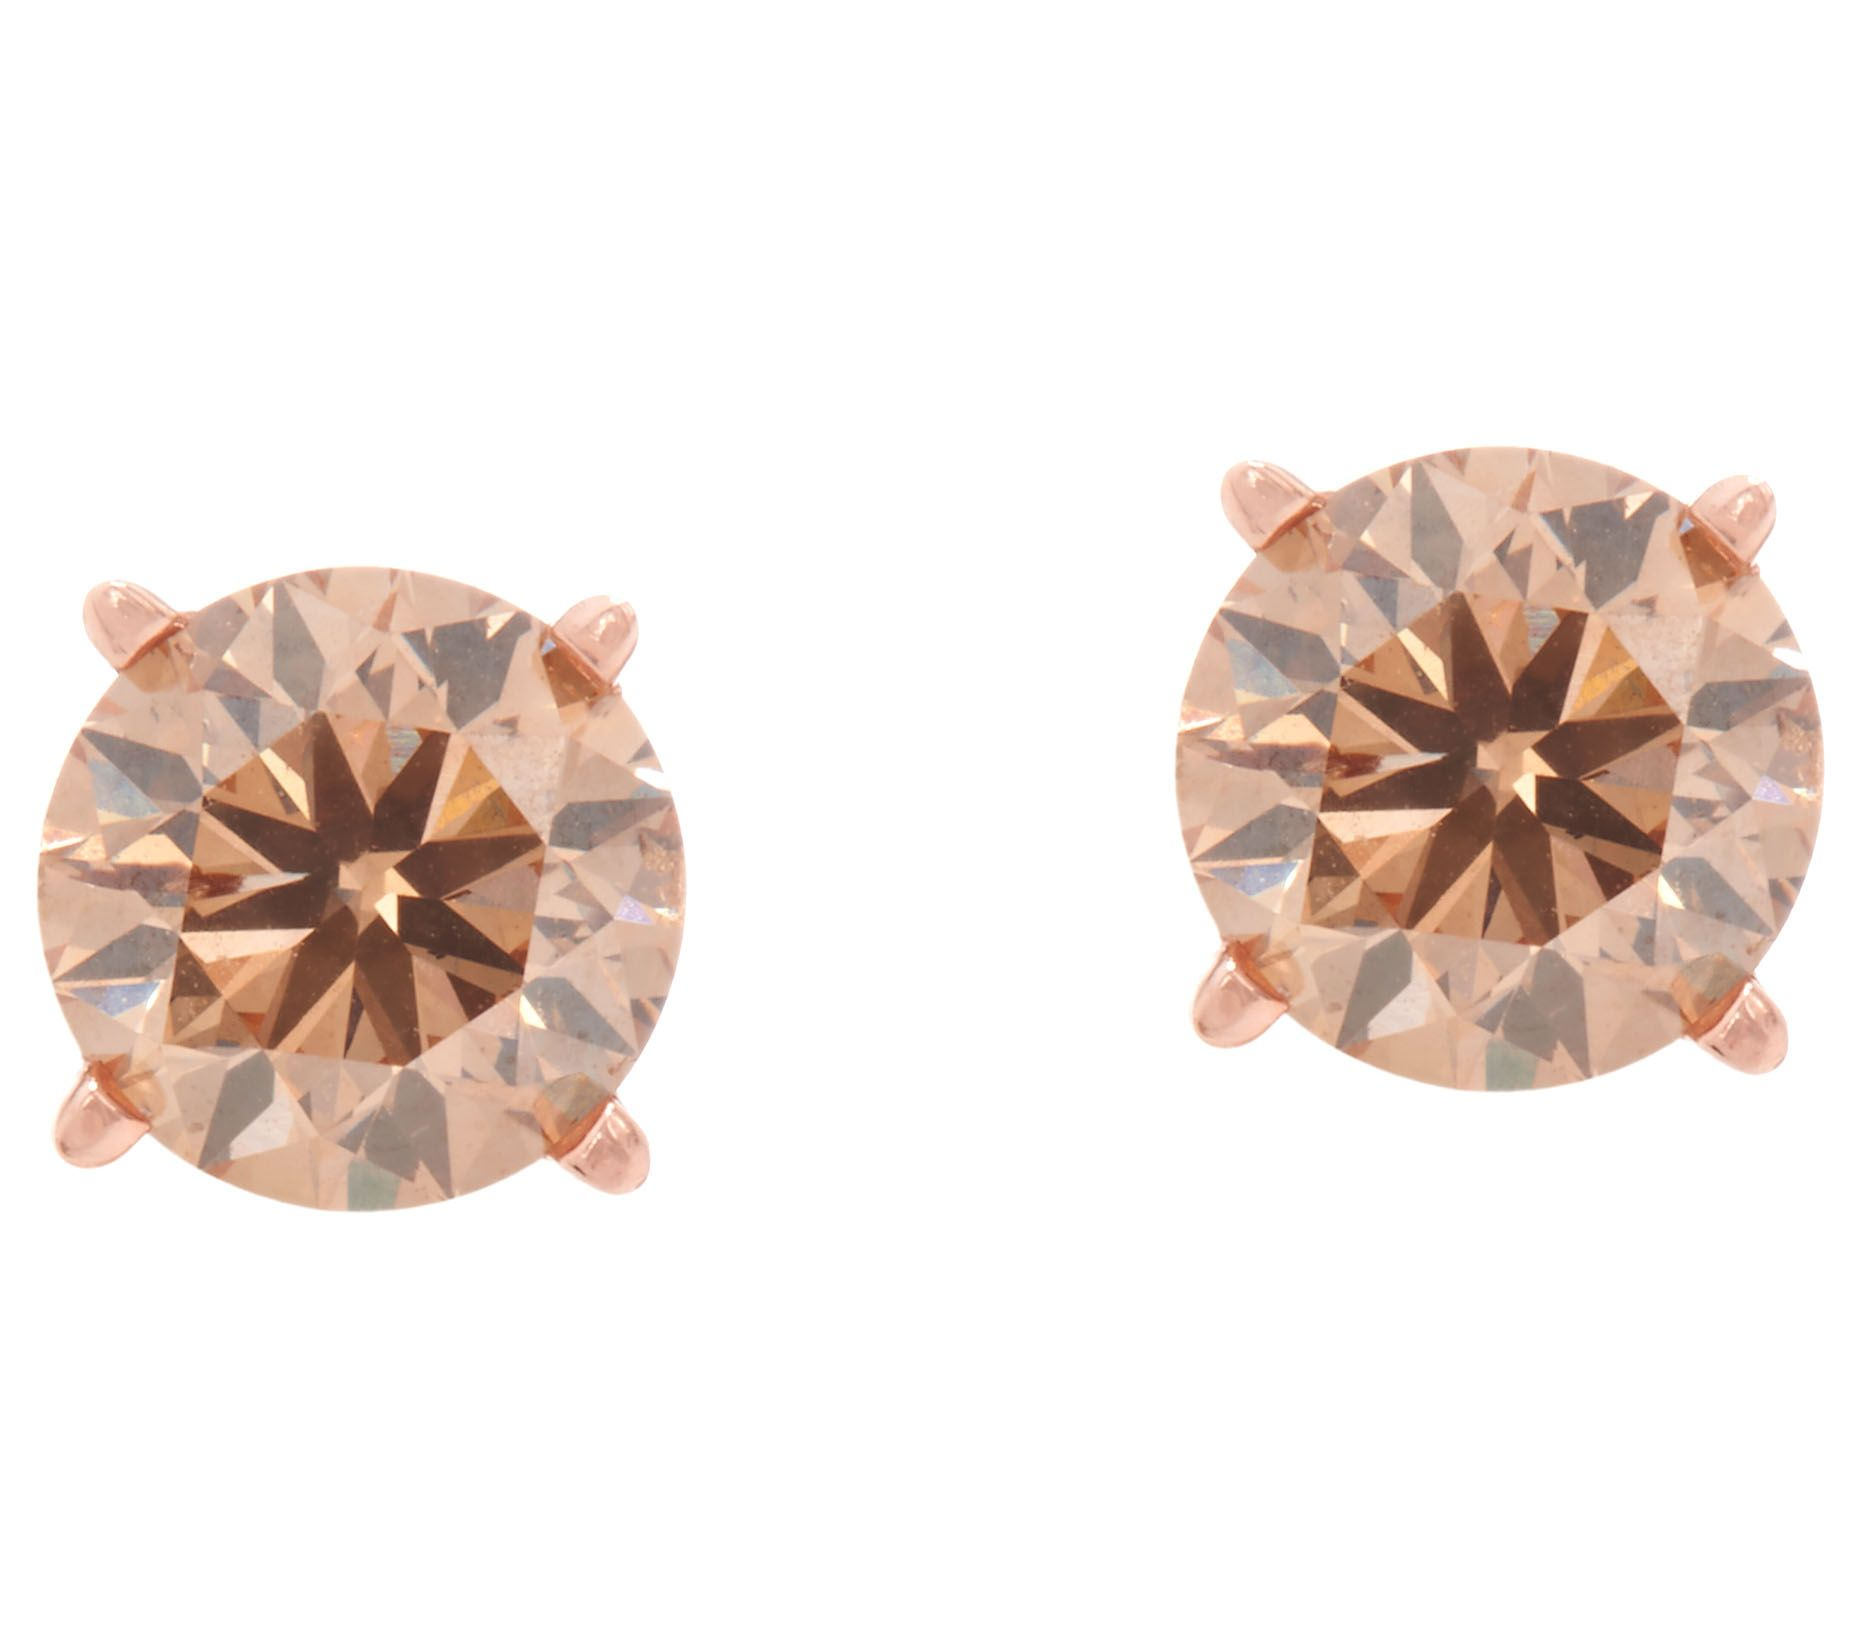 pearl brown kawakita satomi jewelry lyst and gallery stud earrings gold diamond in twin